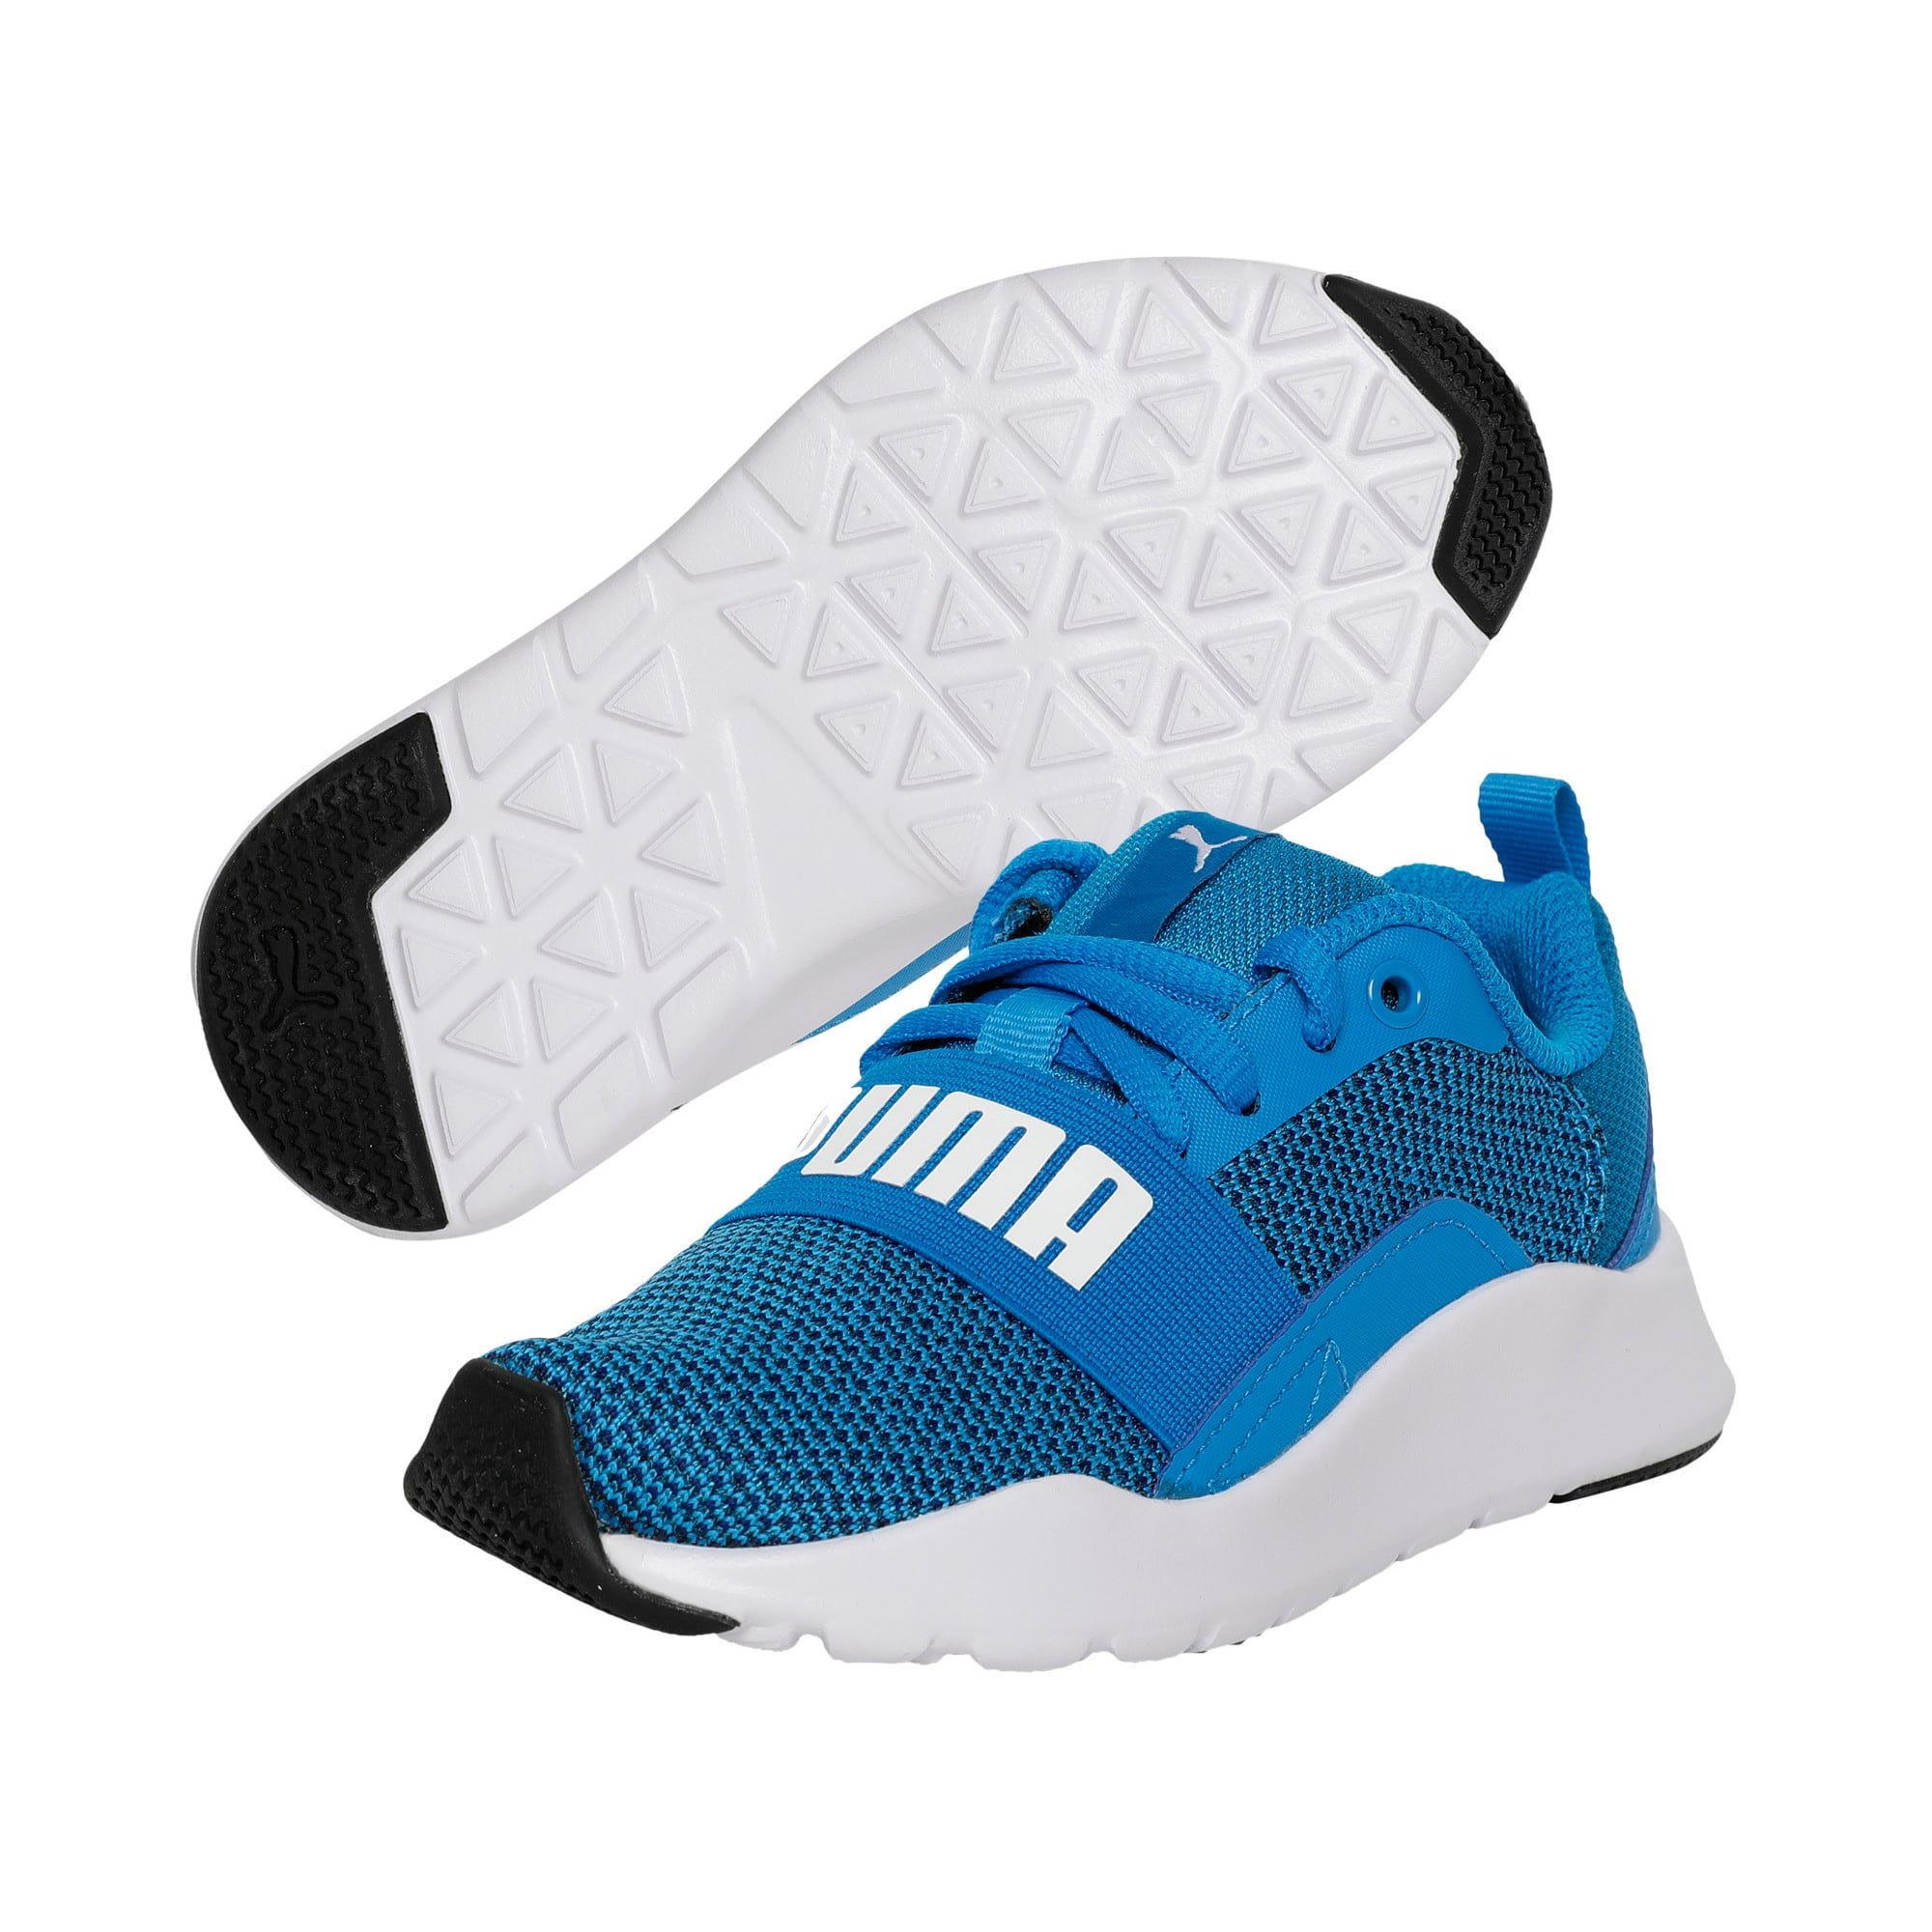 Thumbnail 2 of Wired Knit Kids' Trainers, Indigo Bunting-Puma White, medium-IND